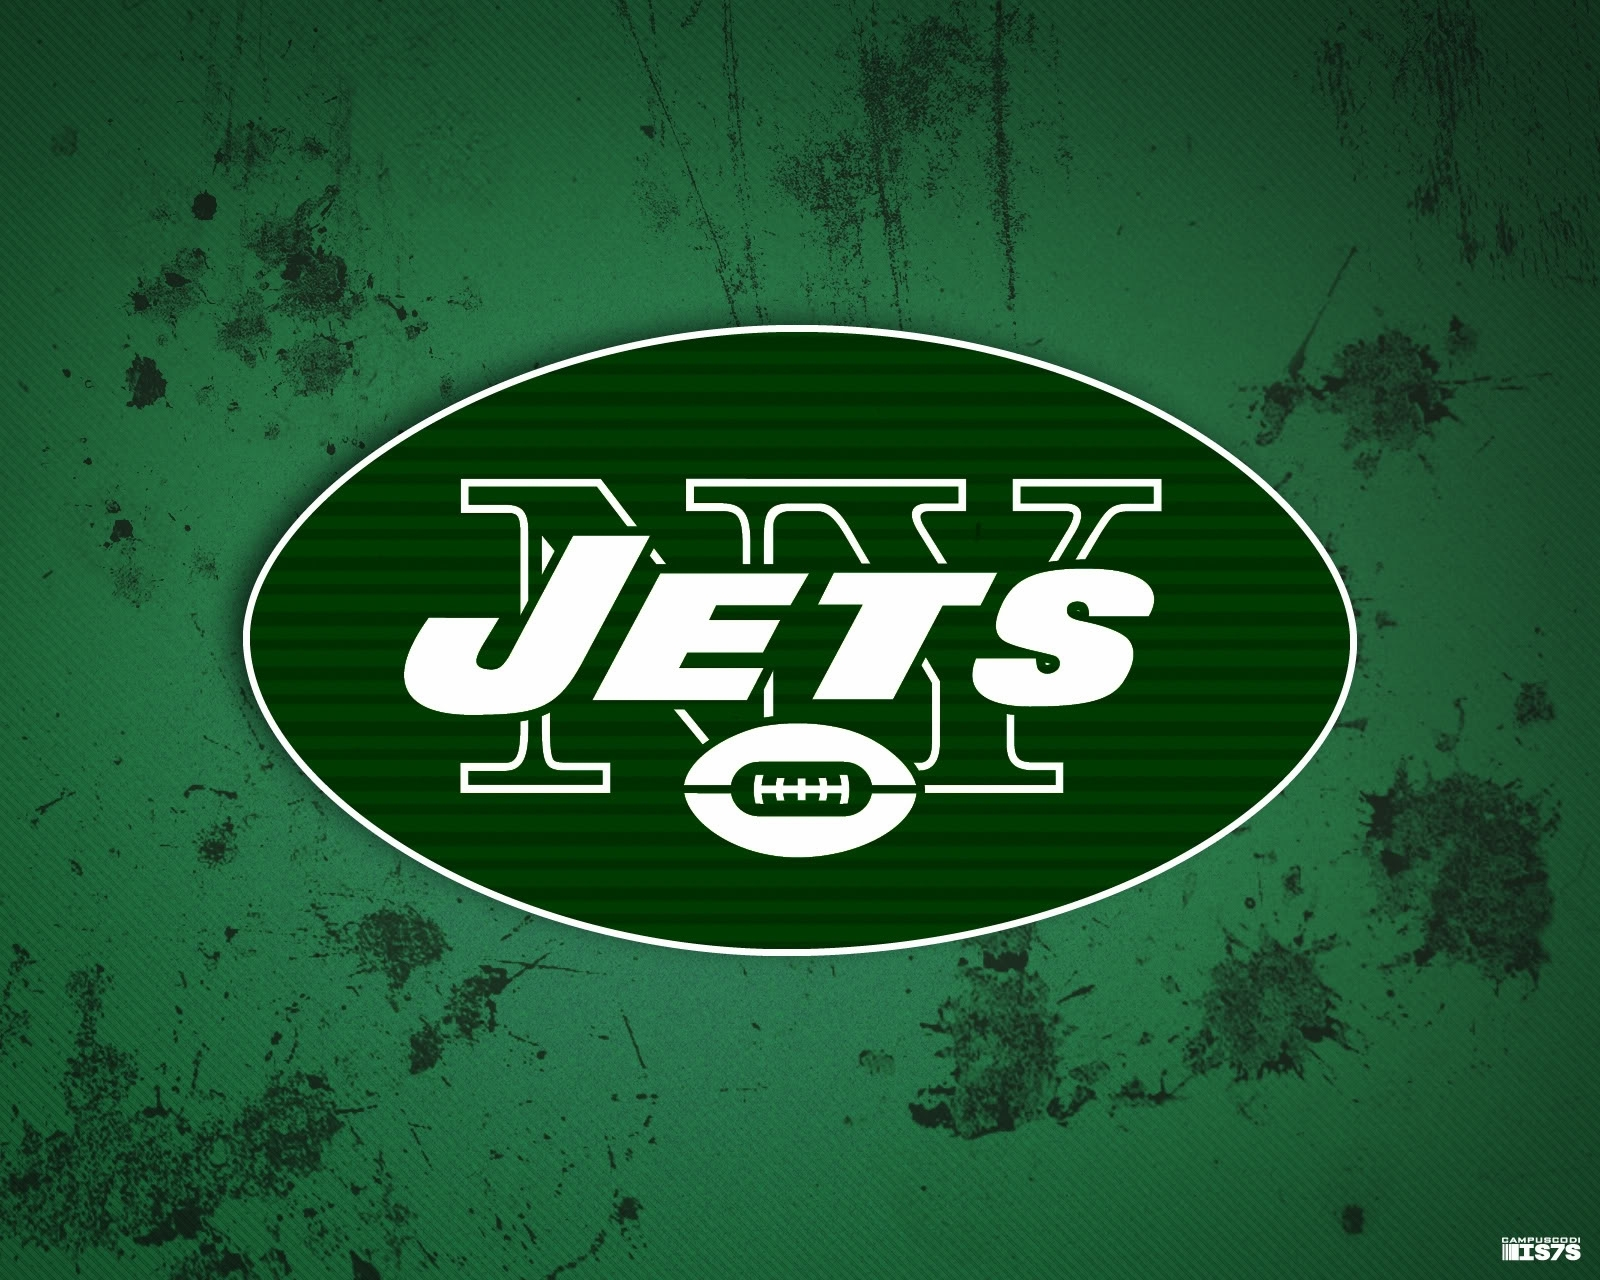 new york jets logo nfl wallpaper hd | nfl wallpaper | pinterest